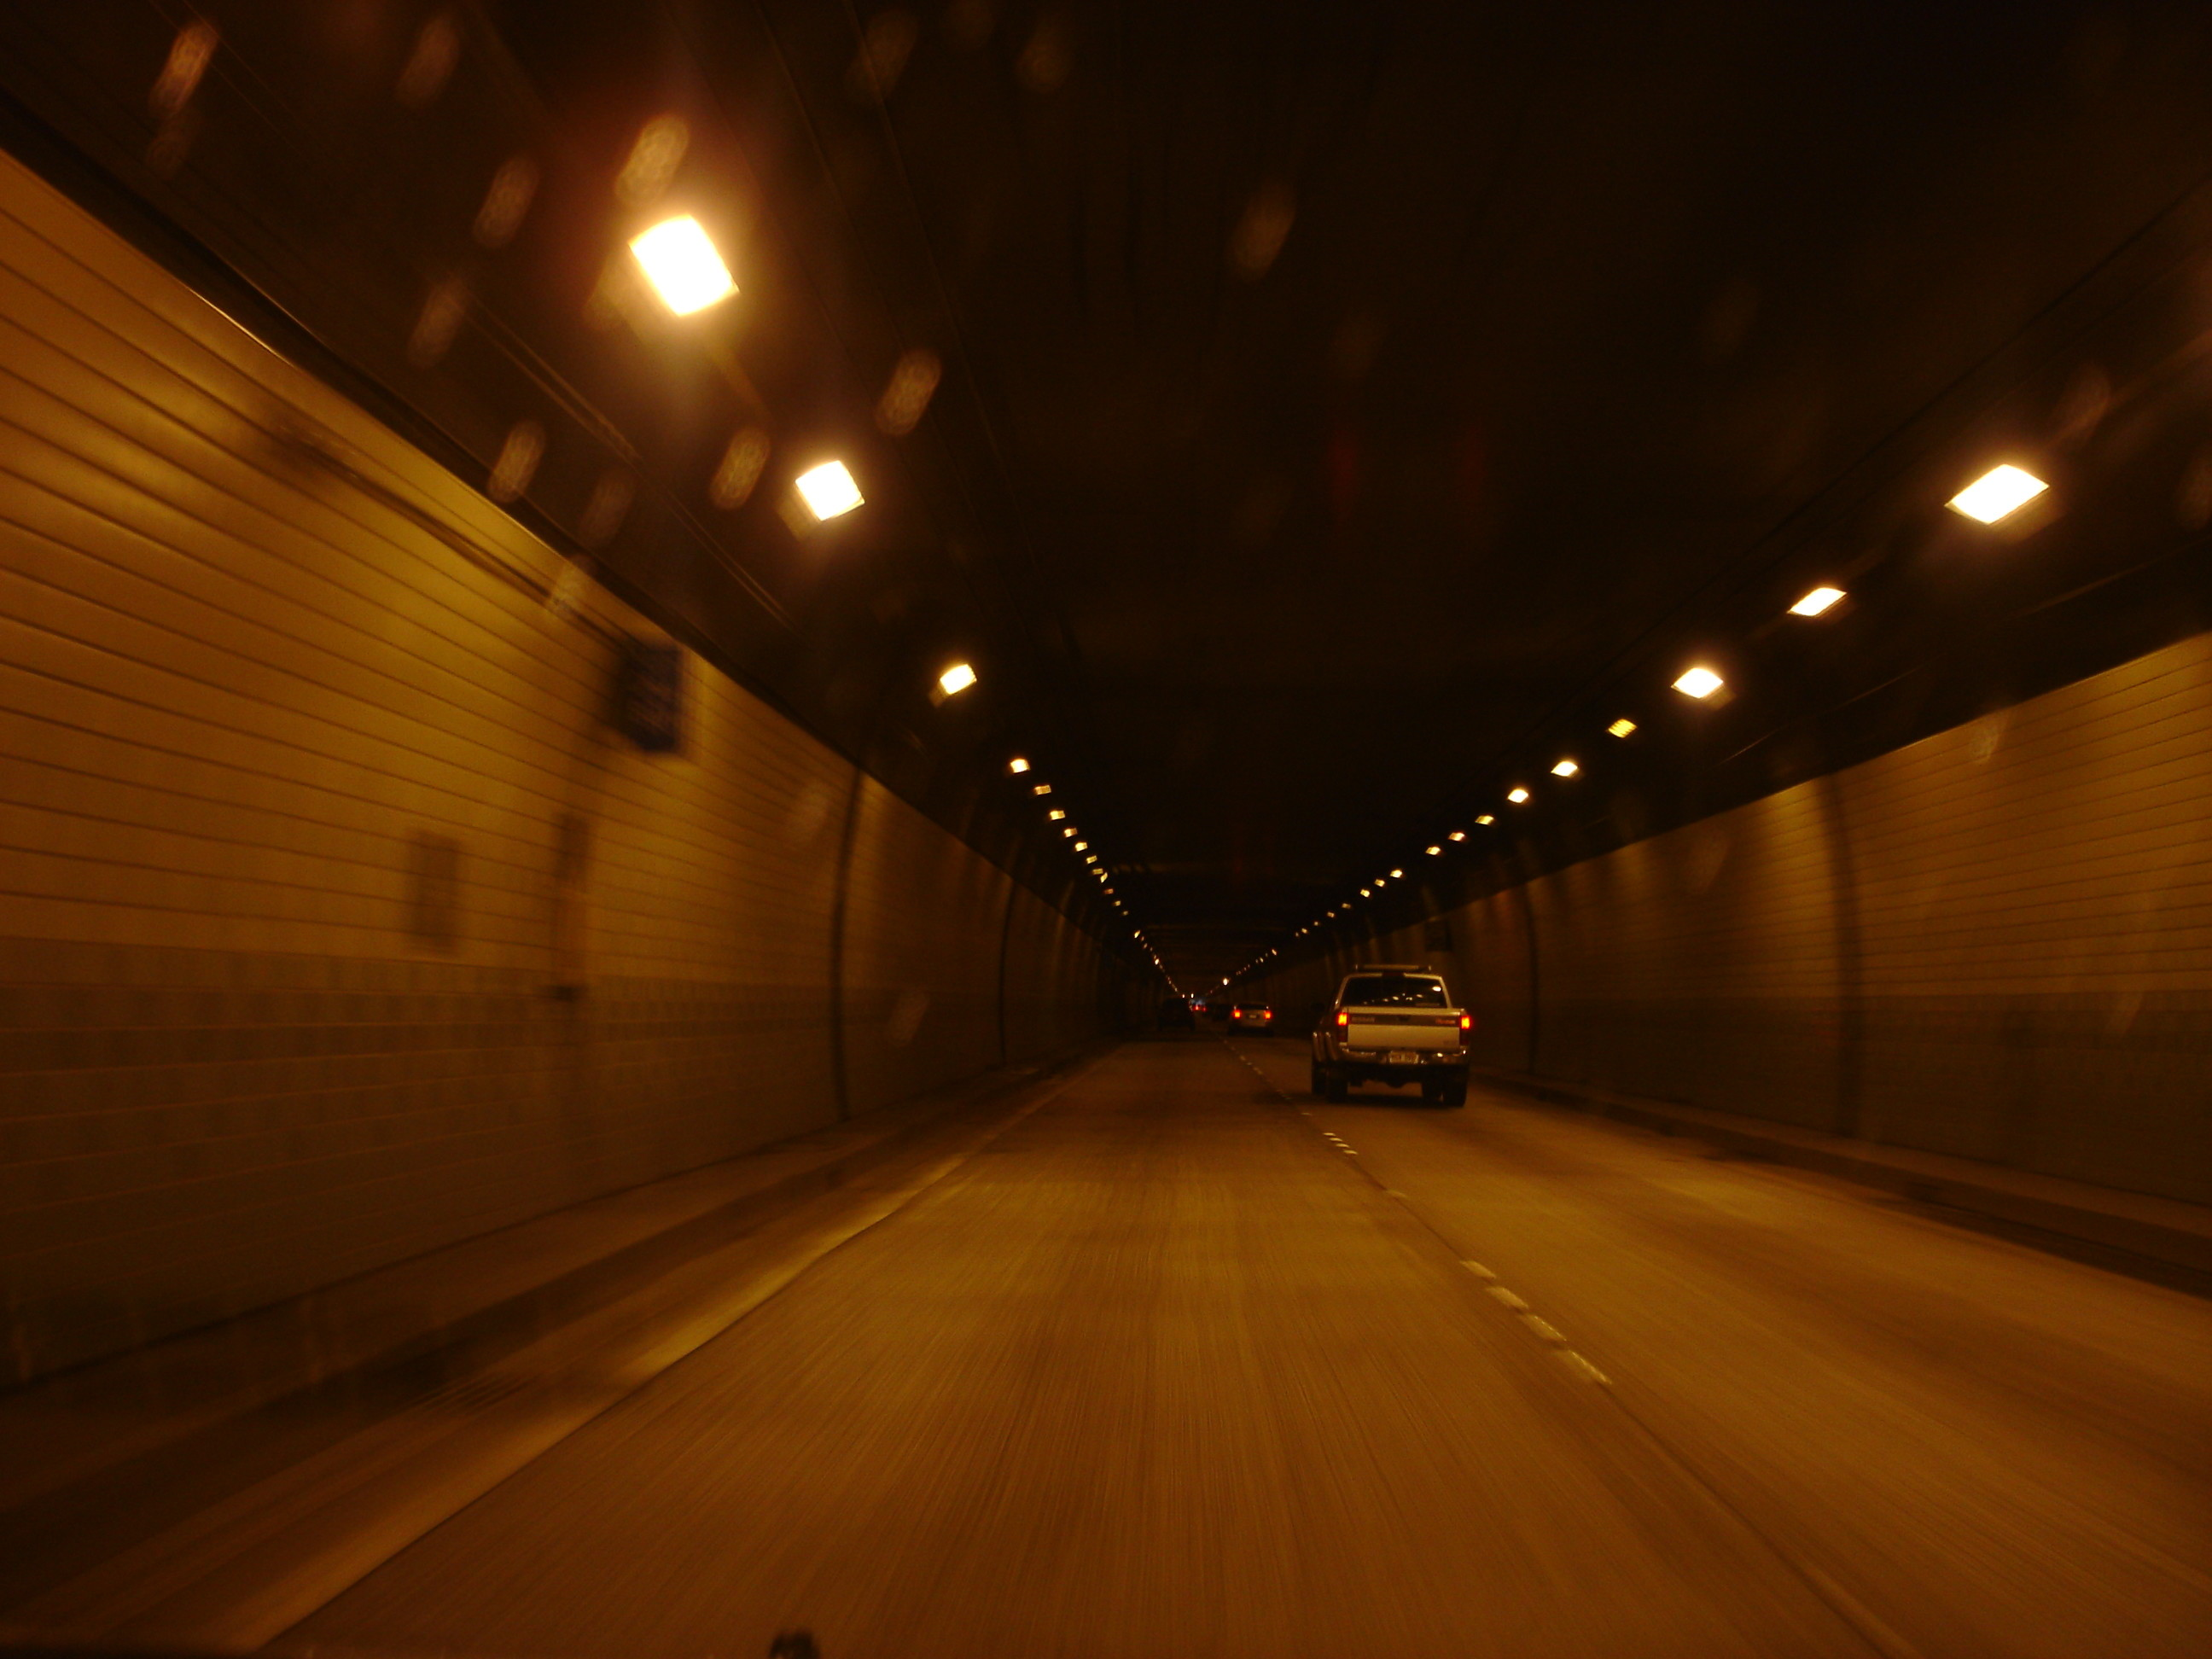 Tunnel phobia is fear of driving through tunnels. Did you know it's related to claustrophobia? That's why it responds well to hypnosis for claustrophobia.